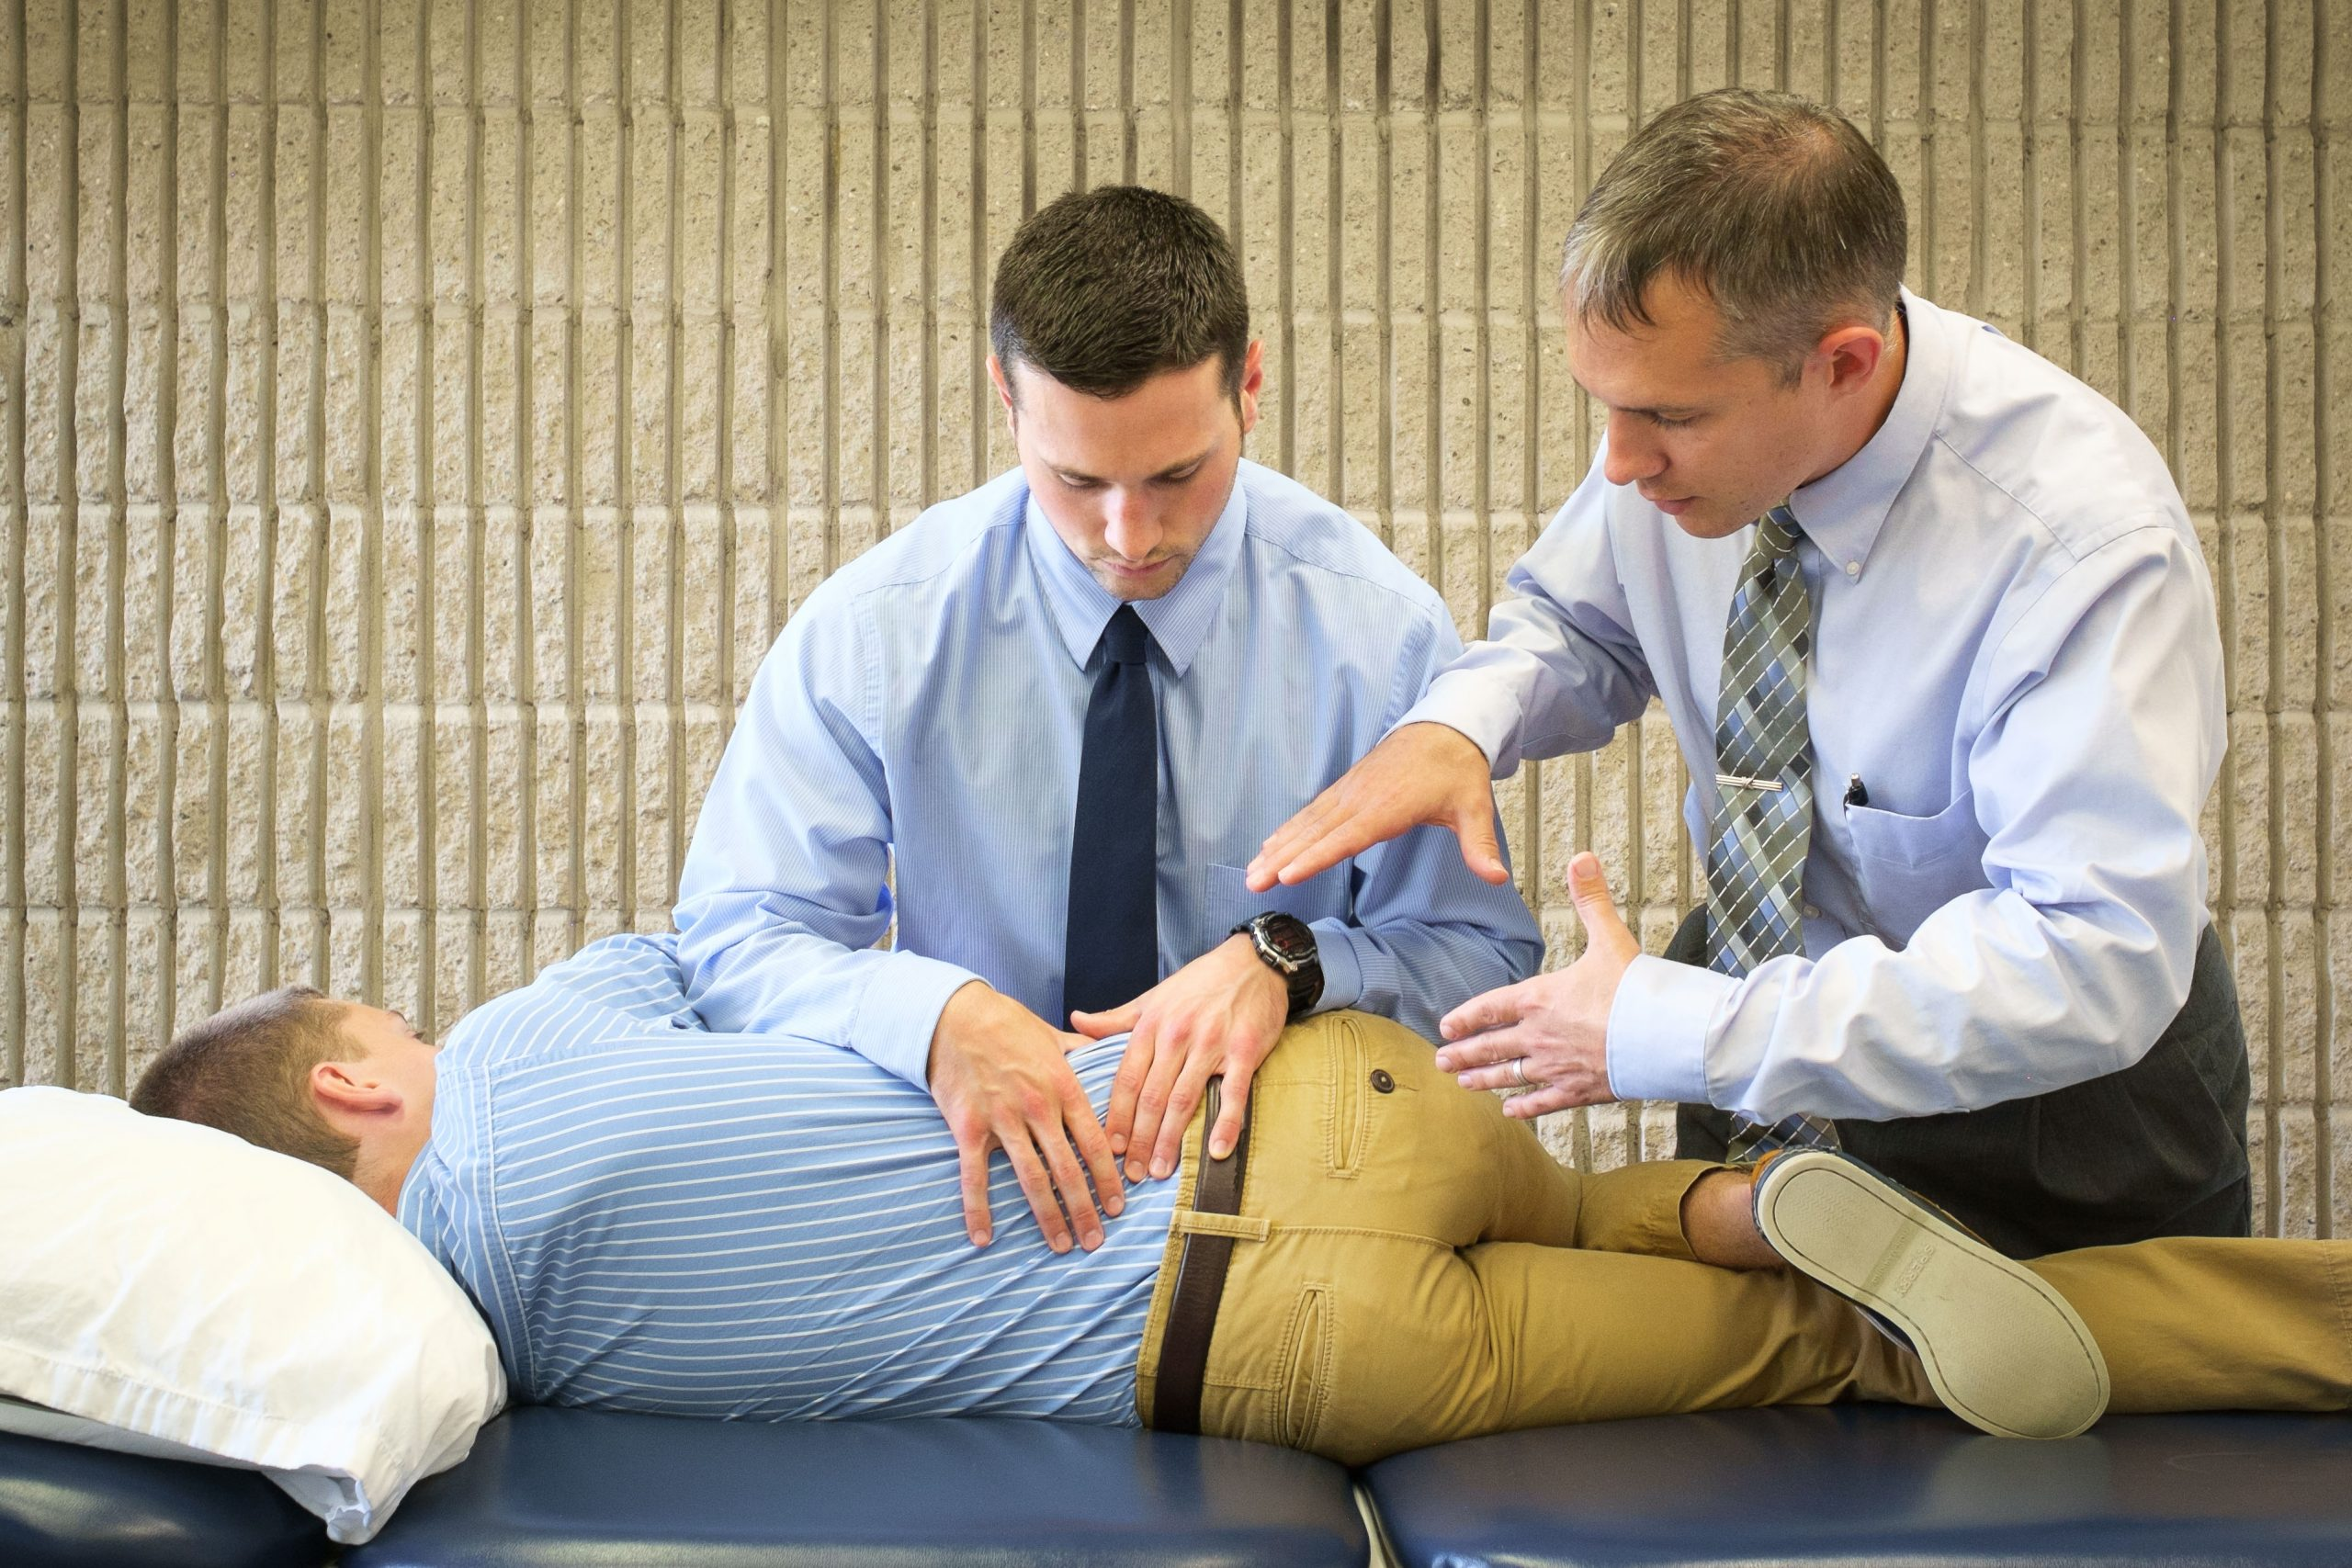 demonstrating a physical therapy exercise with faculty supervision